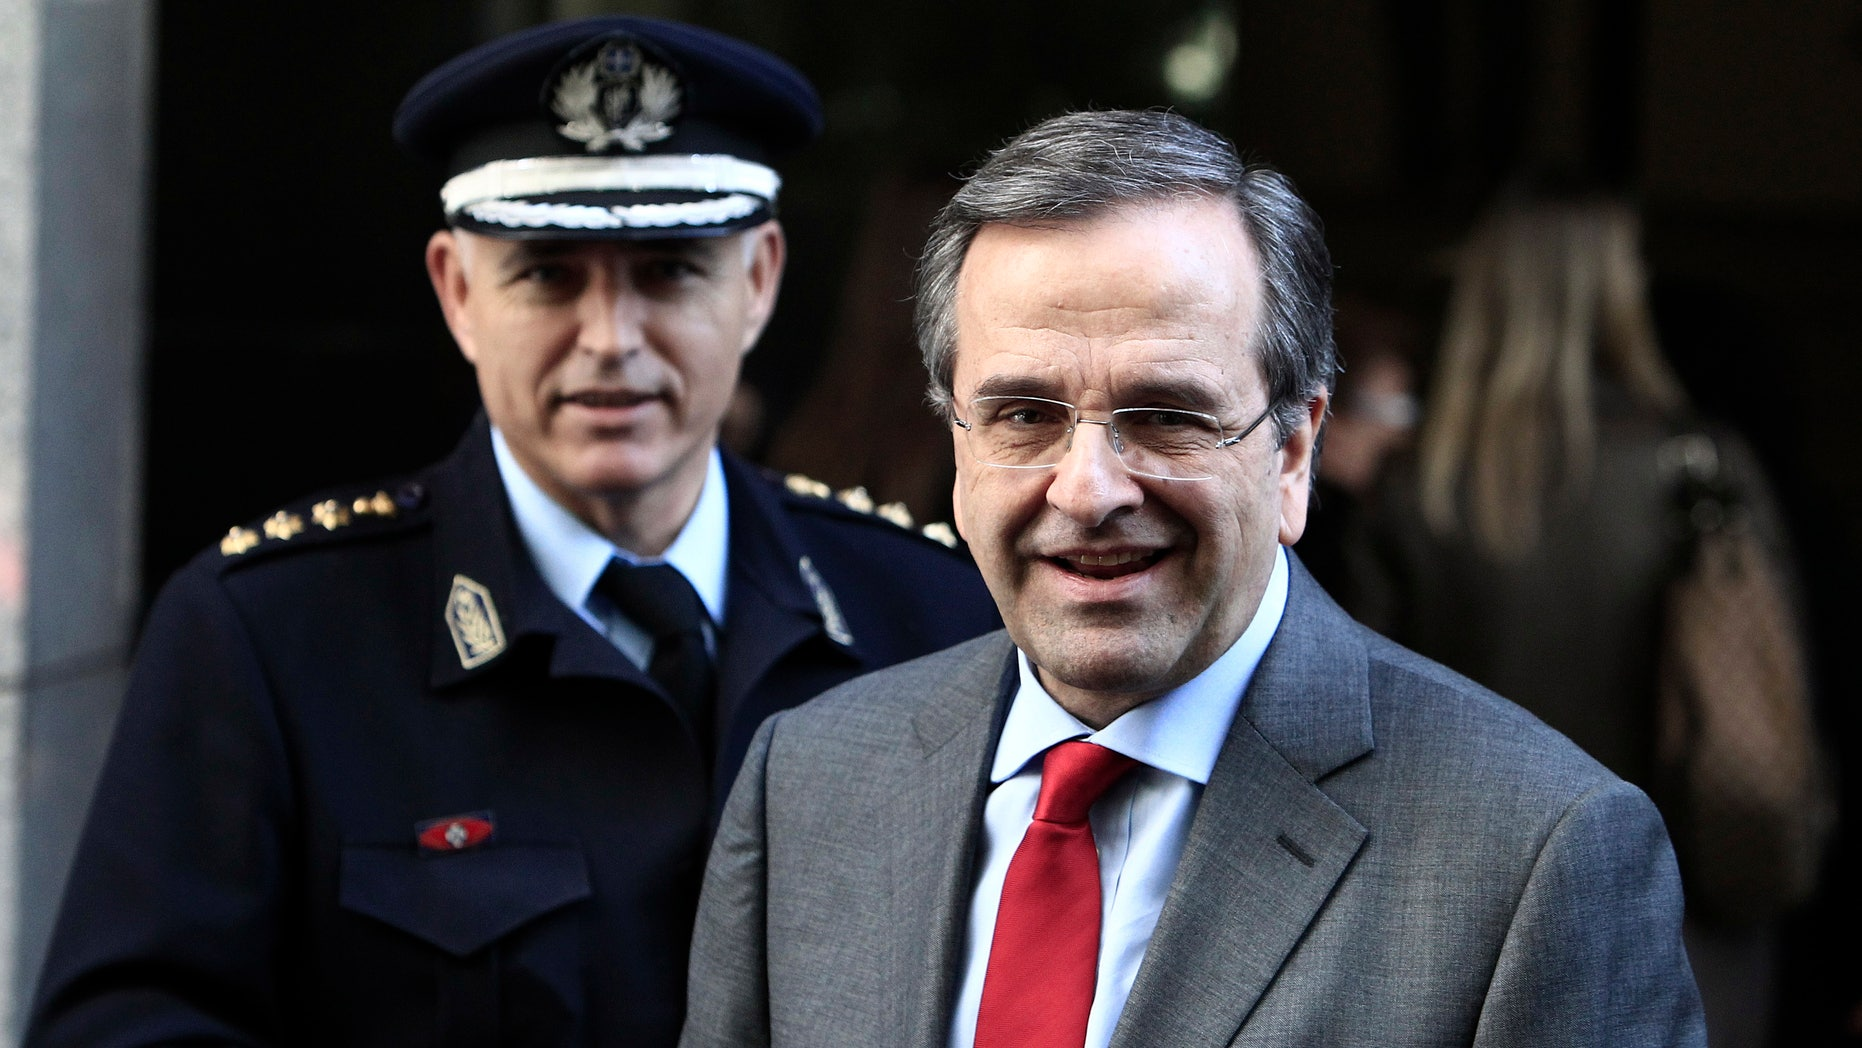 Greece's Prime Minister Antonis Samaras leaves the Finance Ministry after a meeting on cutting red tape for businesses in Athens, Monday, Feb. 17, 2014. Samaras has said that after years of deficits, Greece will post a euro1.5 billion ($ 2 billion) primary surplus in 2013, and in 2014 the country is expected to return to growth after a six-year recession. But unemployment remains at record high levels, reaching a staggering 28 percent in November. (AP Photo/Thanassis Stavrakis)